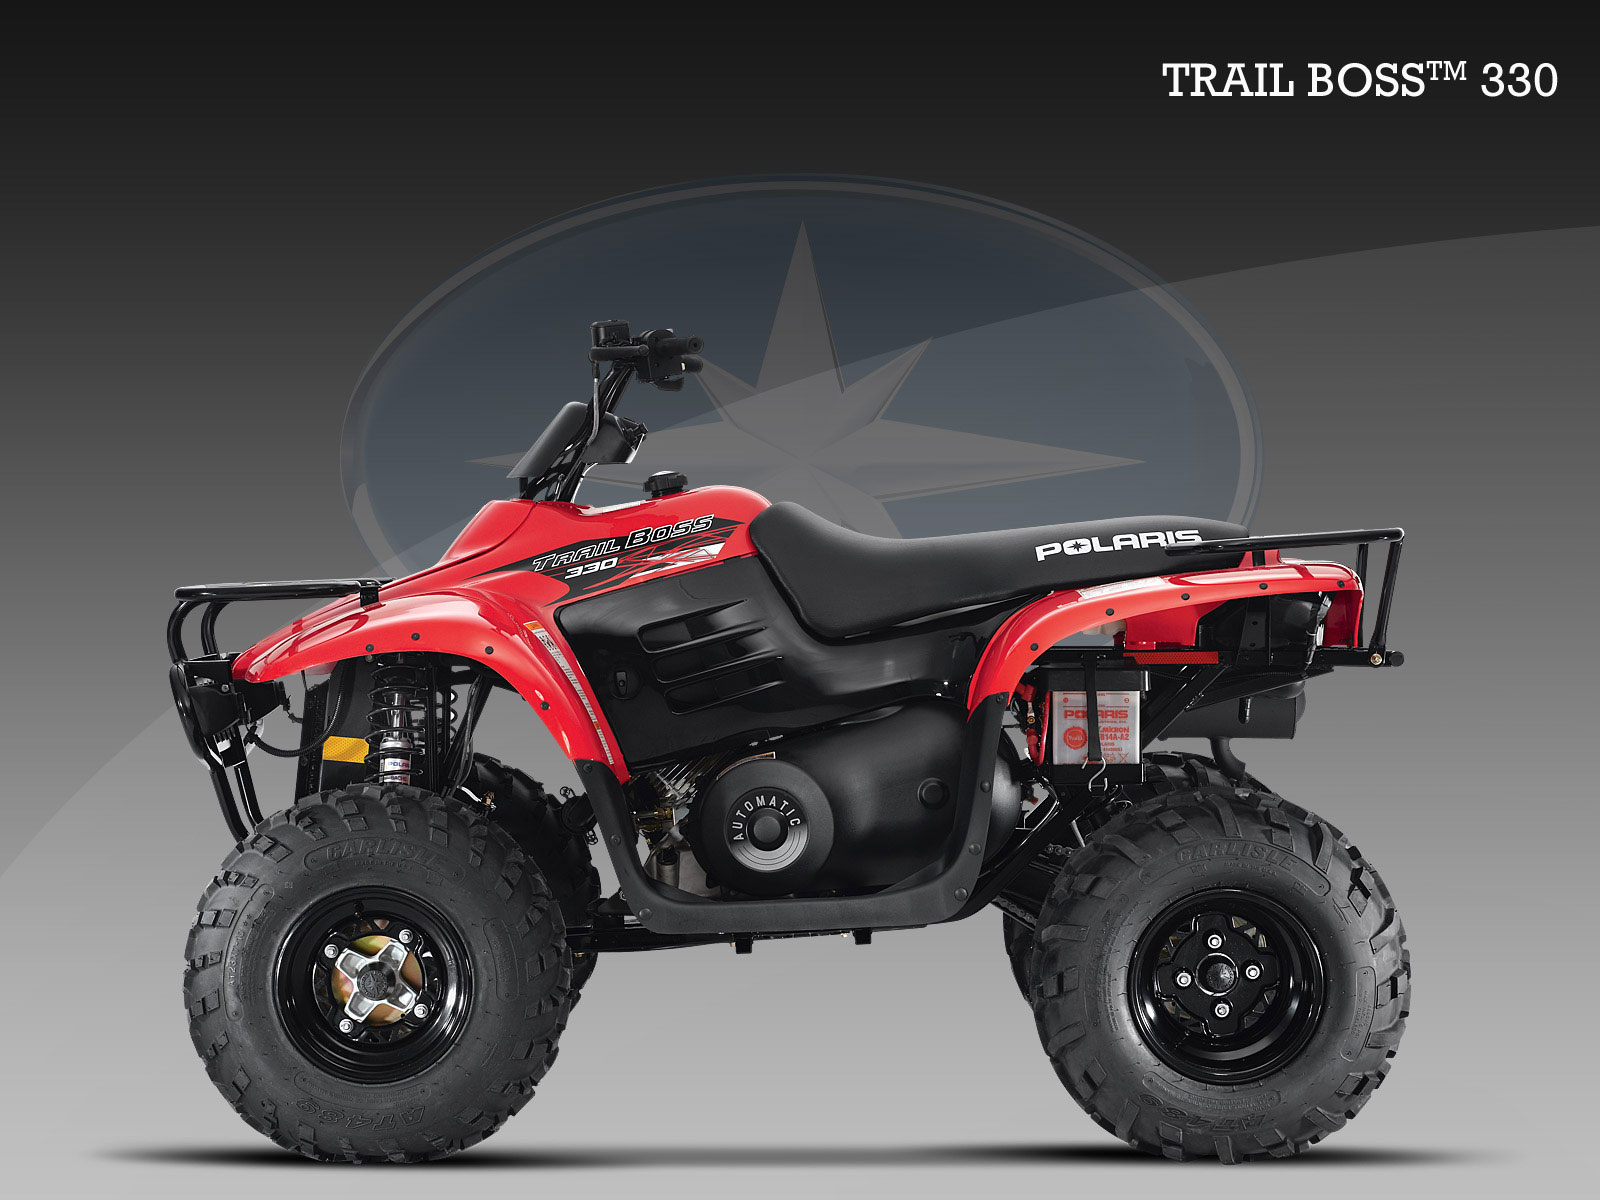 Polaris Trail Blazer 250 images #120576